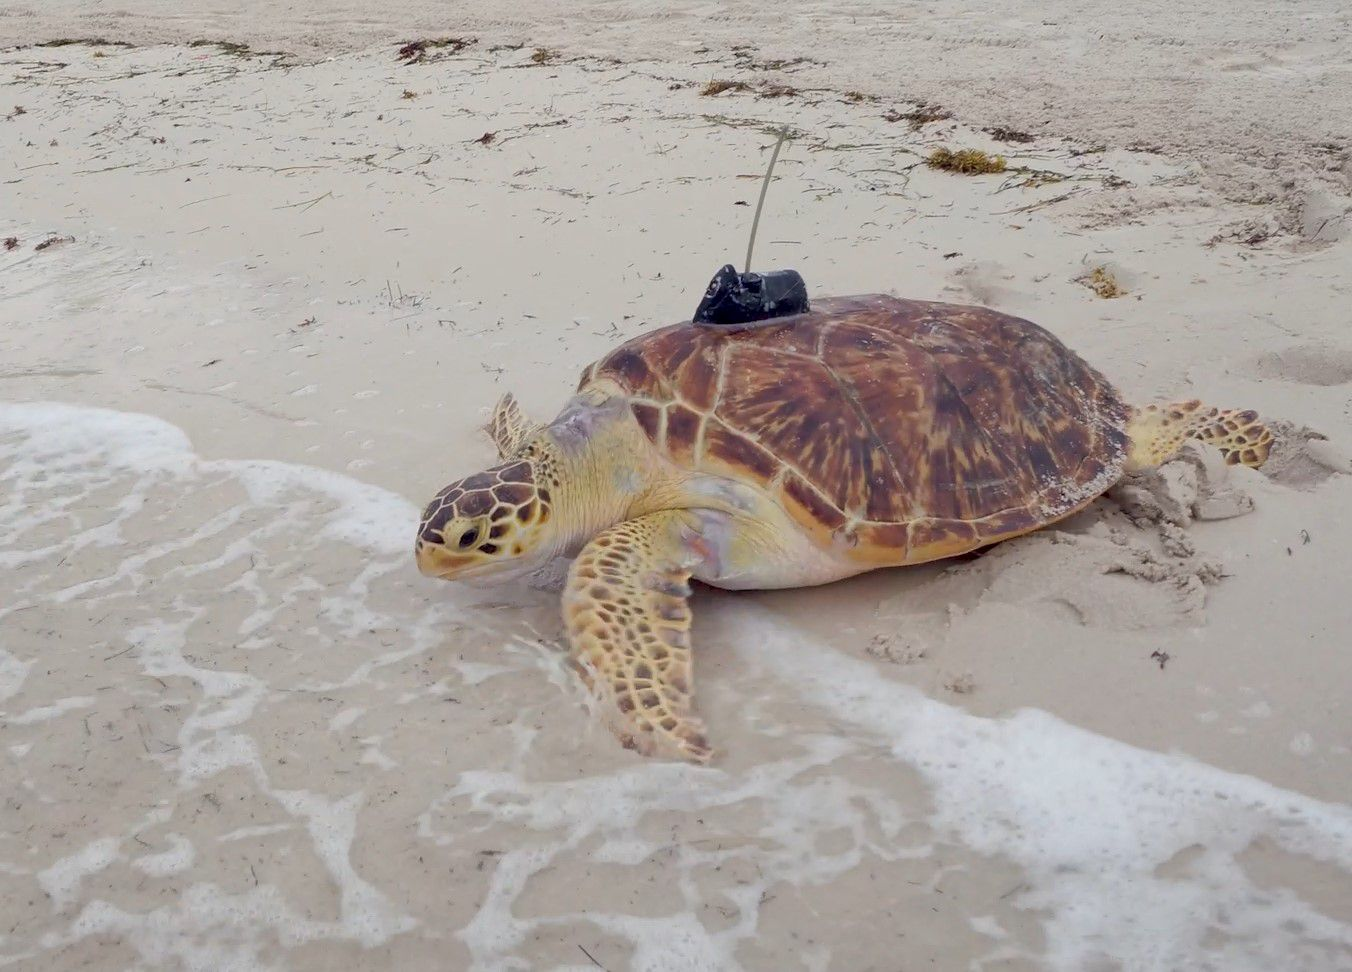 Rare Hybrid Hawksbill-Green Sea Turtle Released in Florida